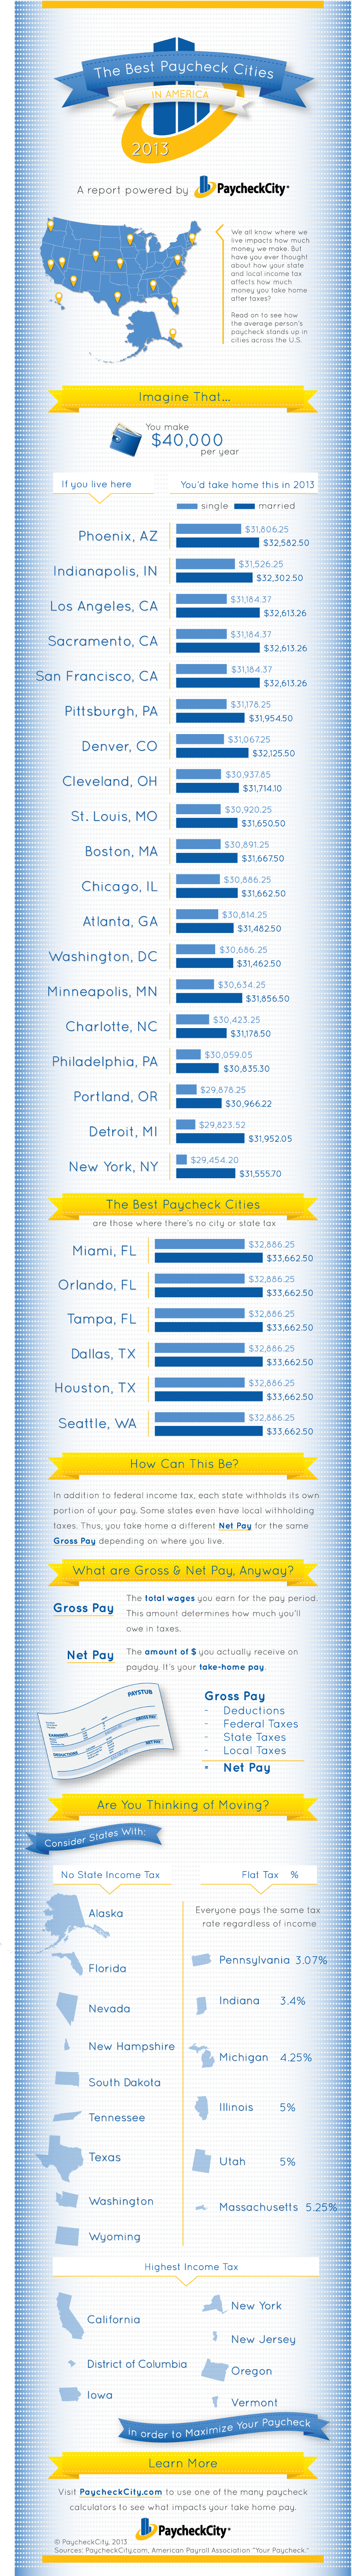 Lowest-State-and-Local-Income-Tax